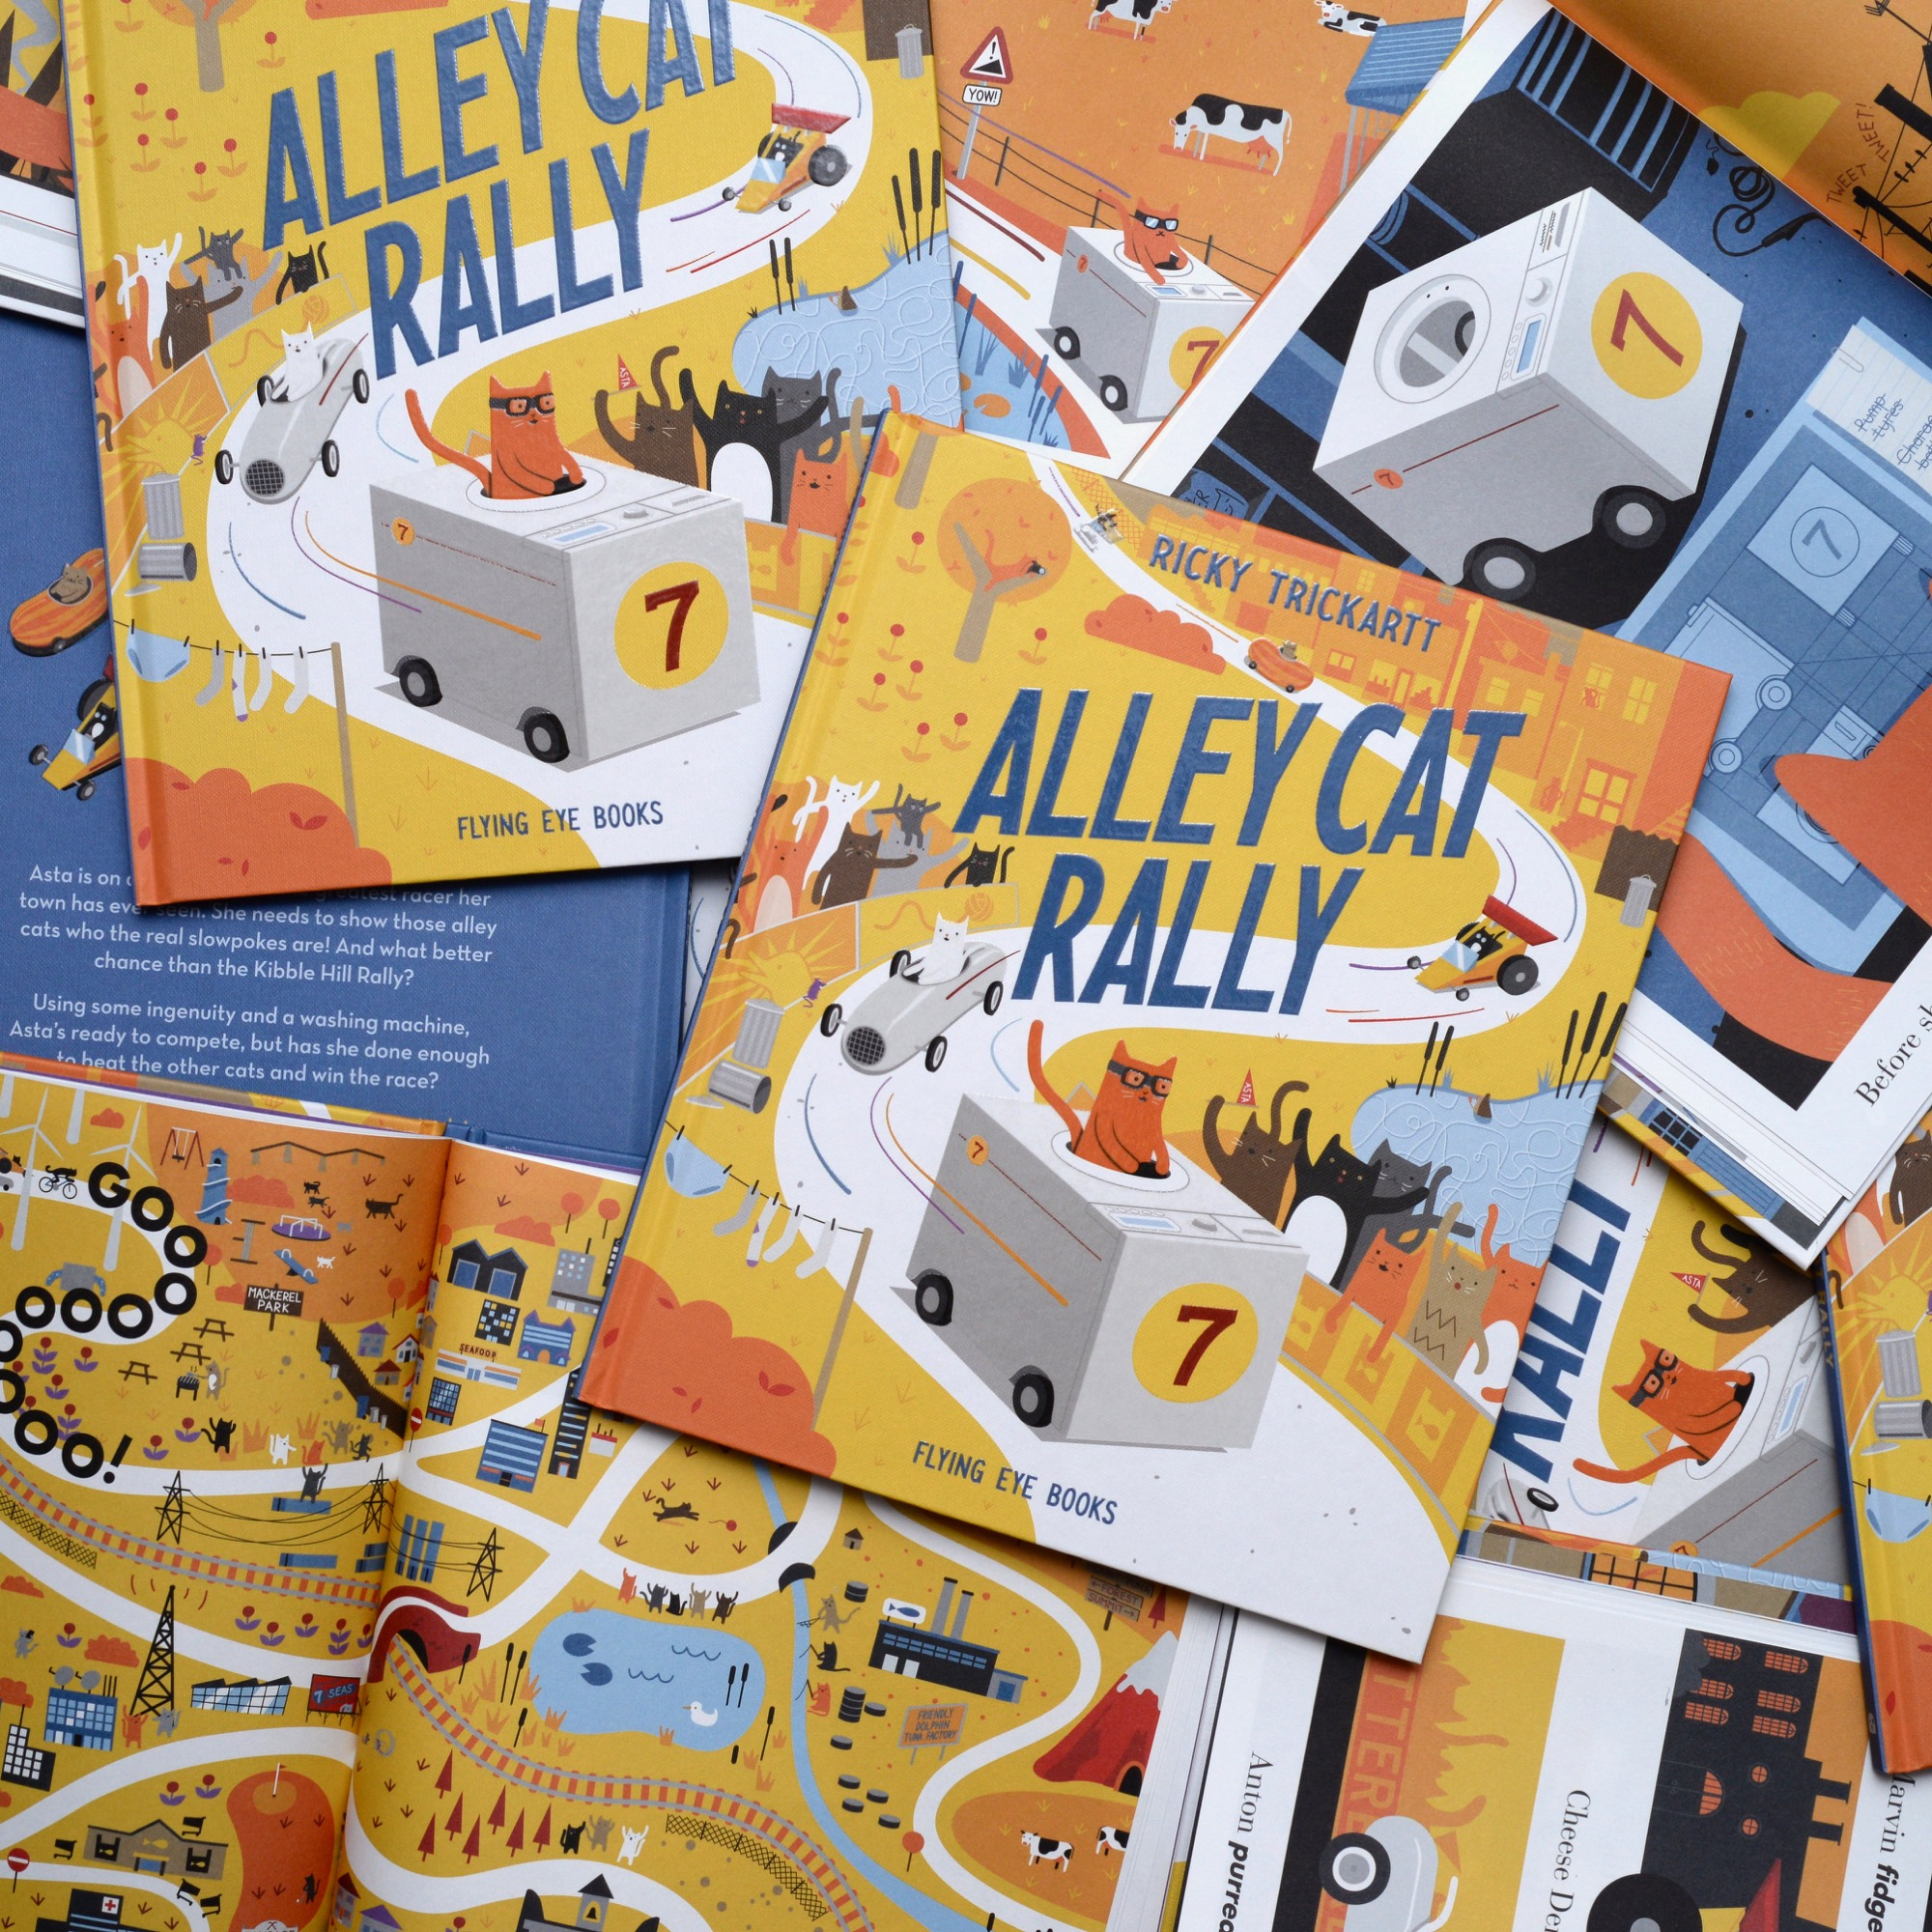 copies of Alley Cat Rally by Ricky Trickartt